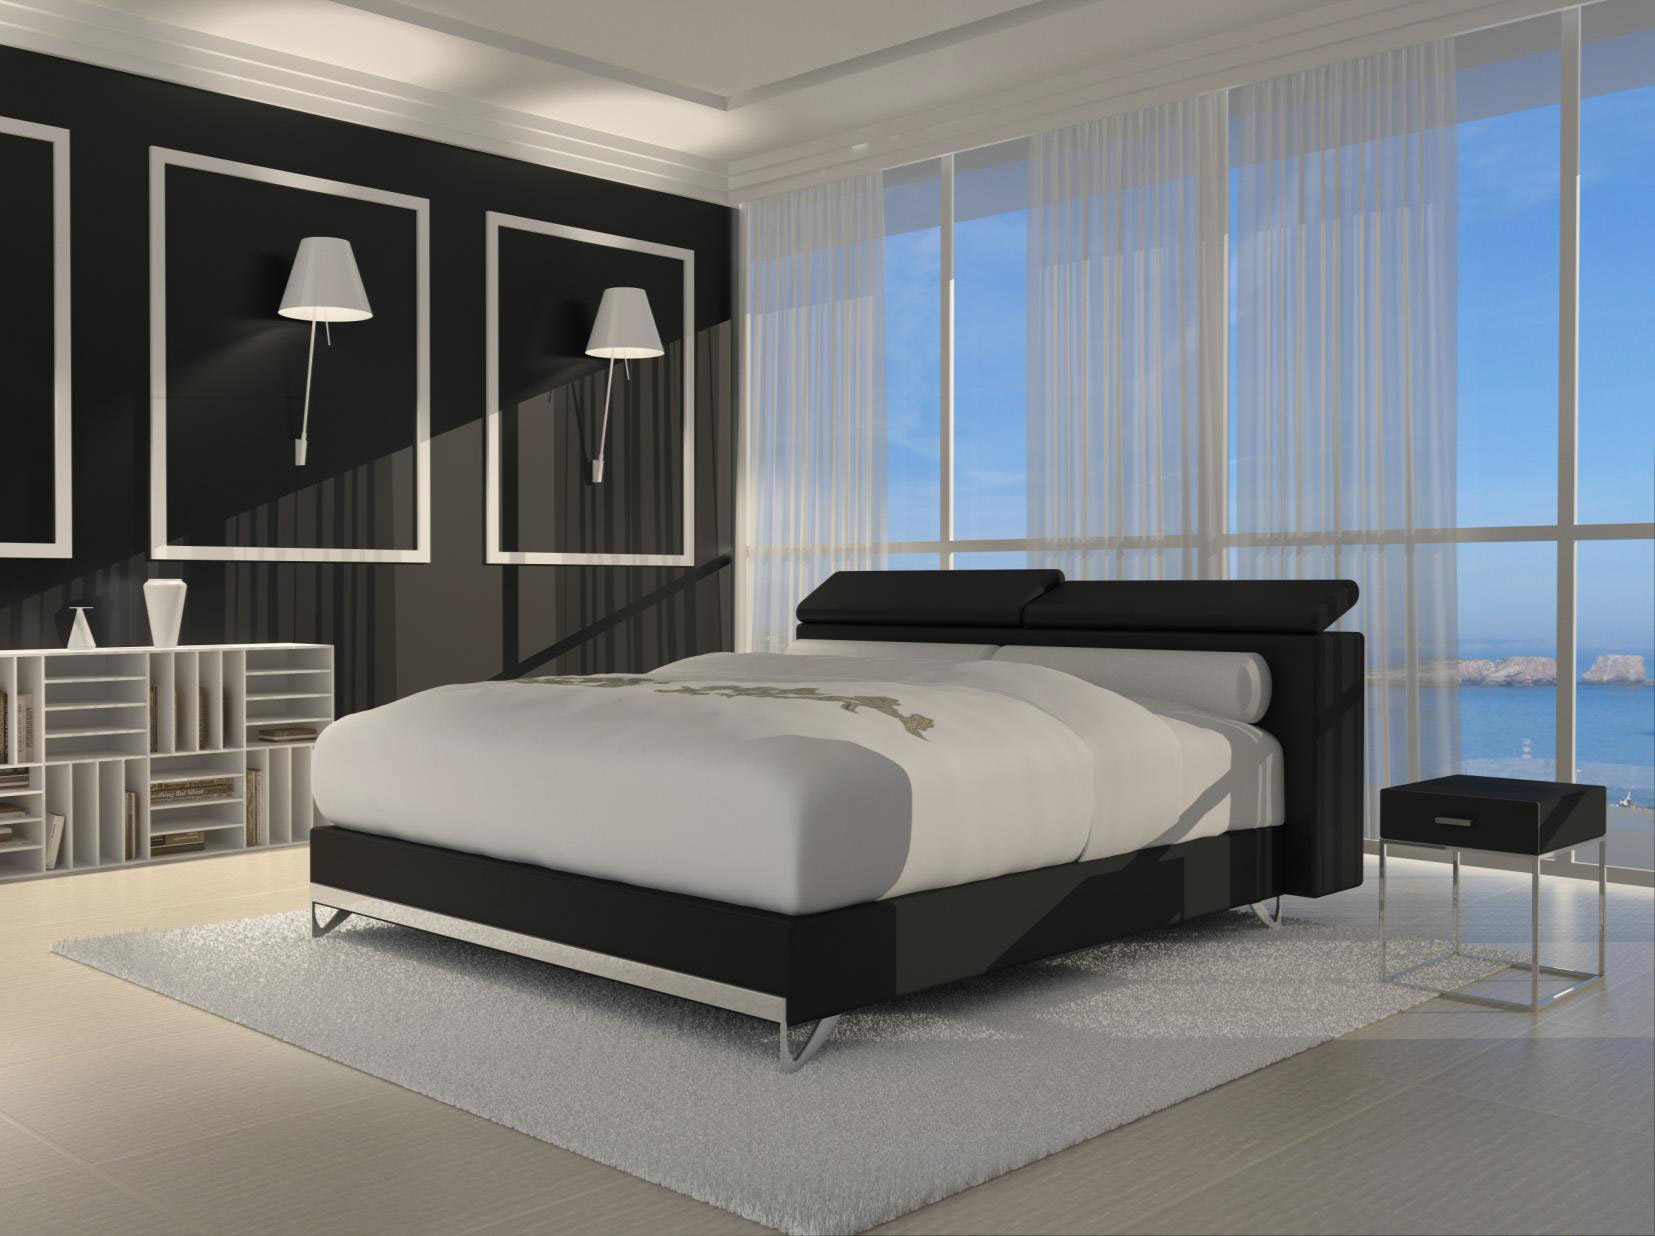 sam design boxspringbett 180 x 200 cm schwarz wendigo opera auf lager. Black Bedroom Furniture Sets. Home Design Ideas